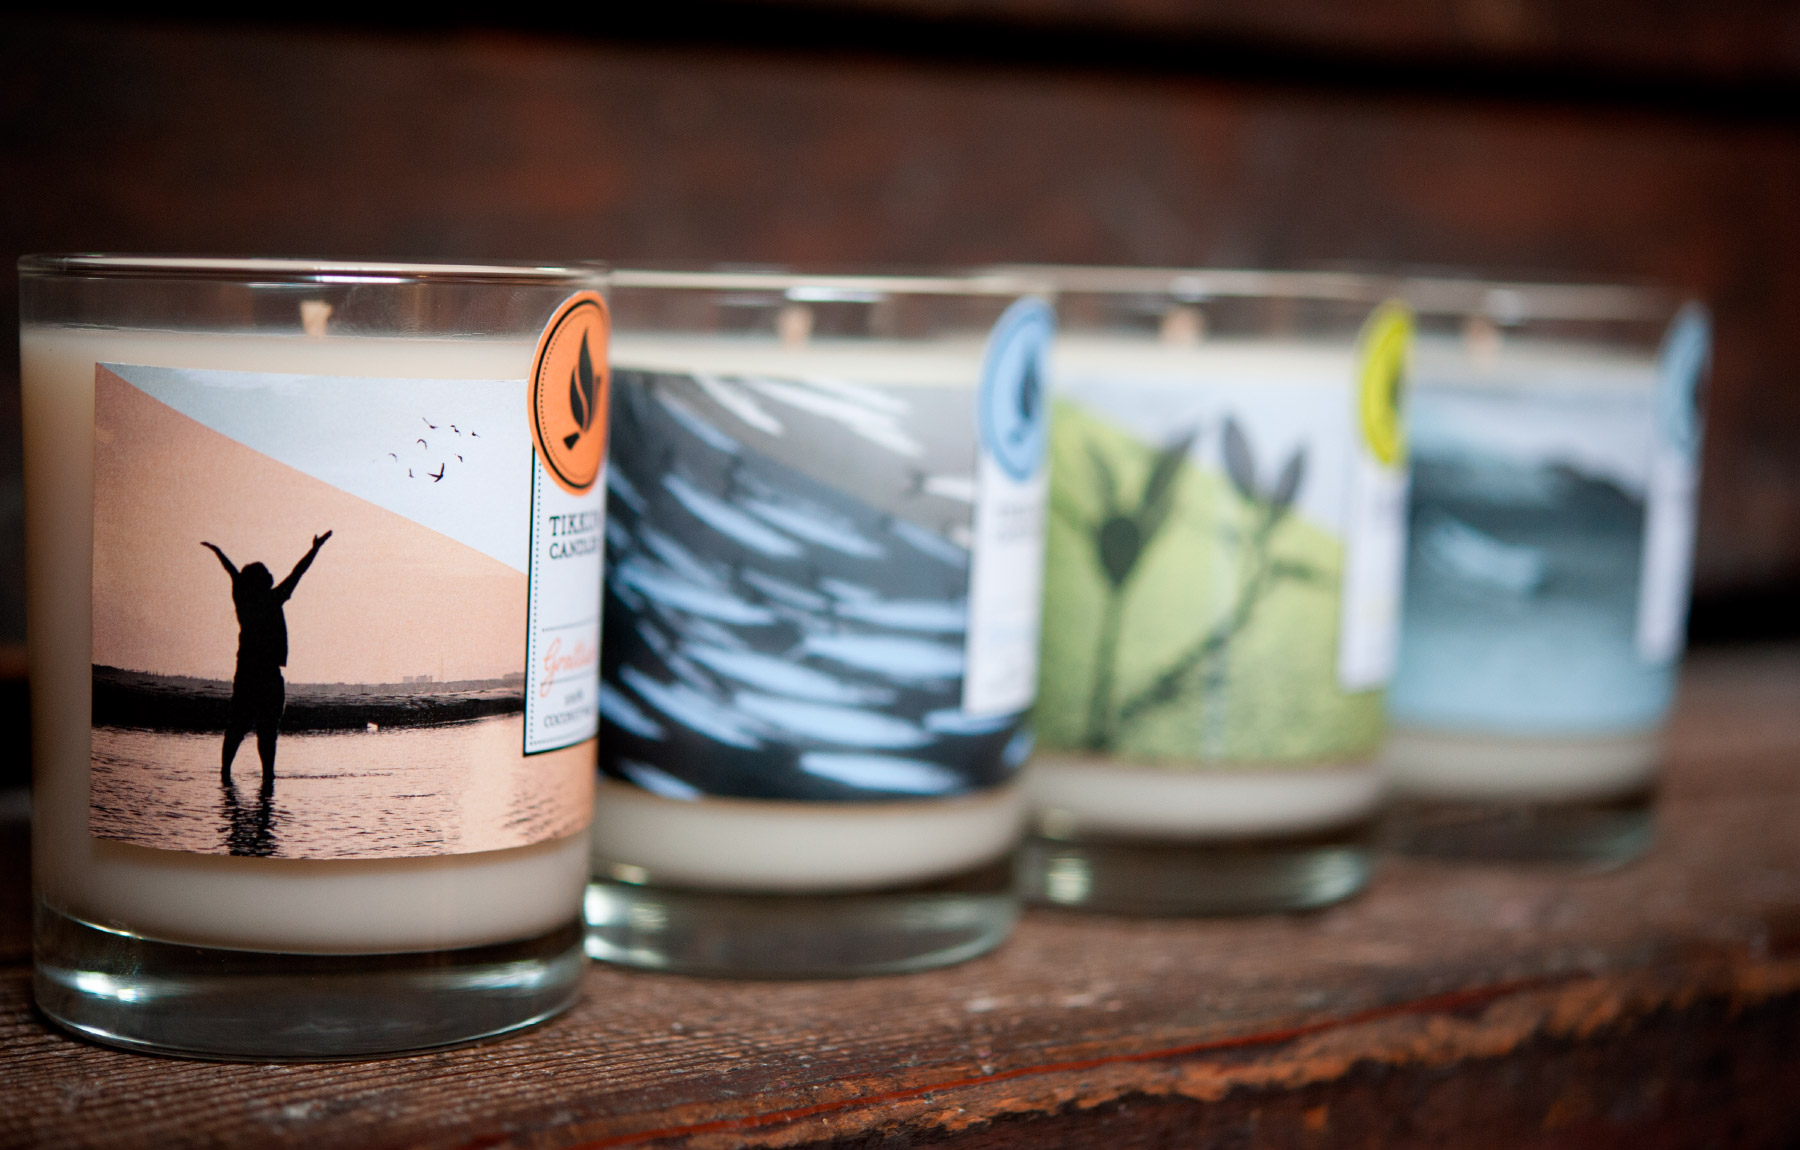 Variety of candle scents from Tikkun Candles